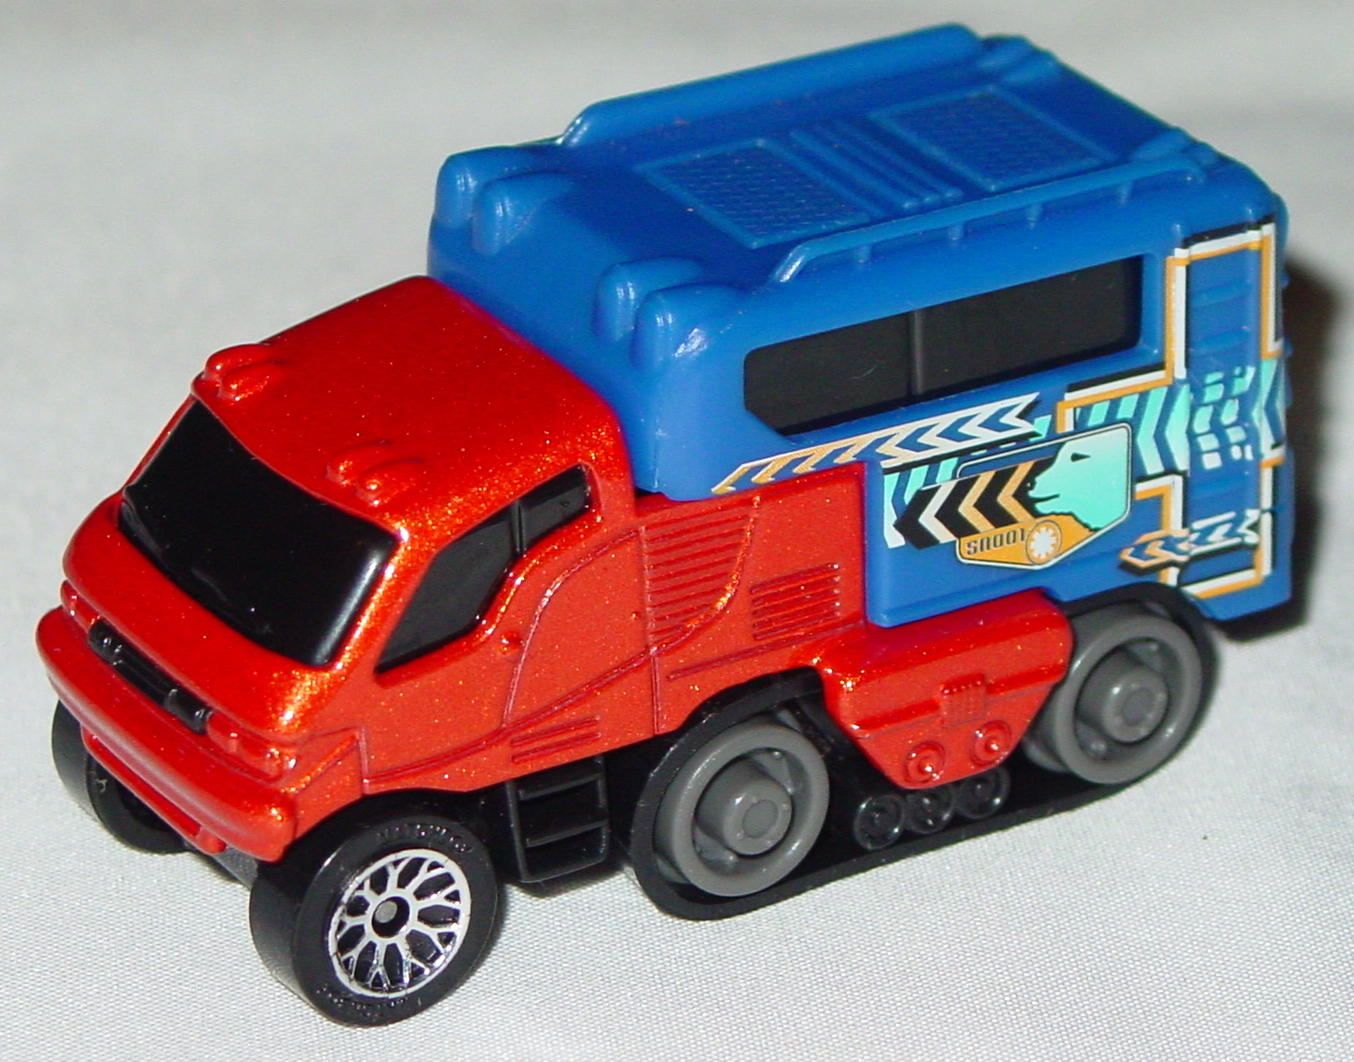 Offshore SuperFast 06 I 6 - 2002 68 Arctic Track Truck met Brnz blue cont lace